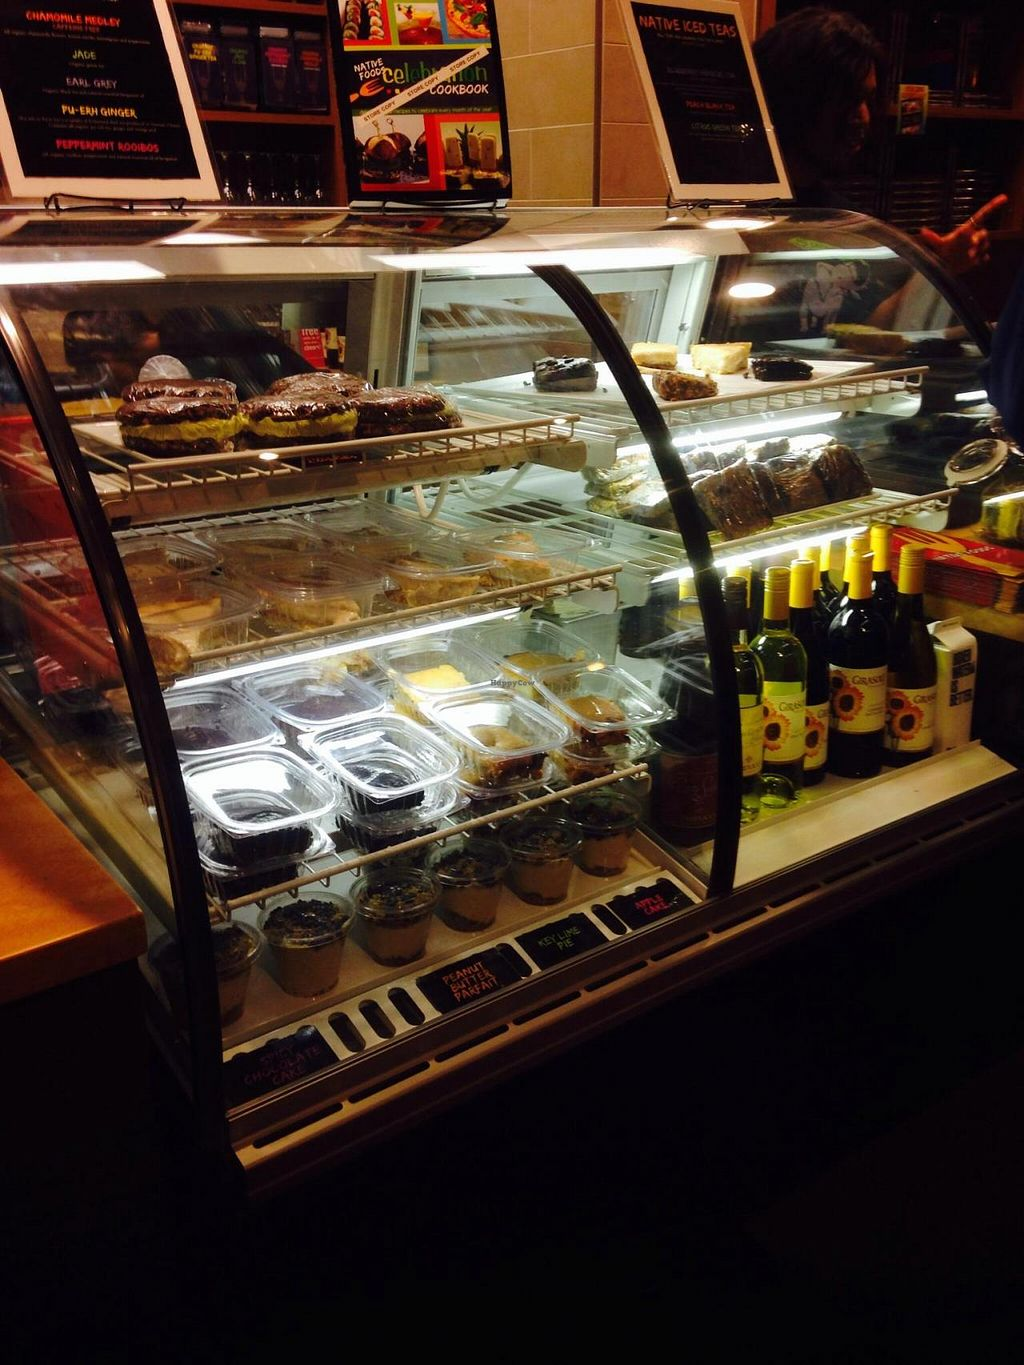 """Photo of CLOSED: Native Foods - Conn Ave  by <a href=""""/members/profile/cookiem"""">cookiem</a> <br/>Dessert case <br/> October 5, 2014  - <a href='/contact/abuse/image/51093/82246'>Report</a>"""